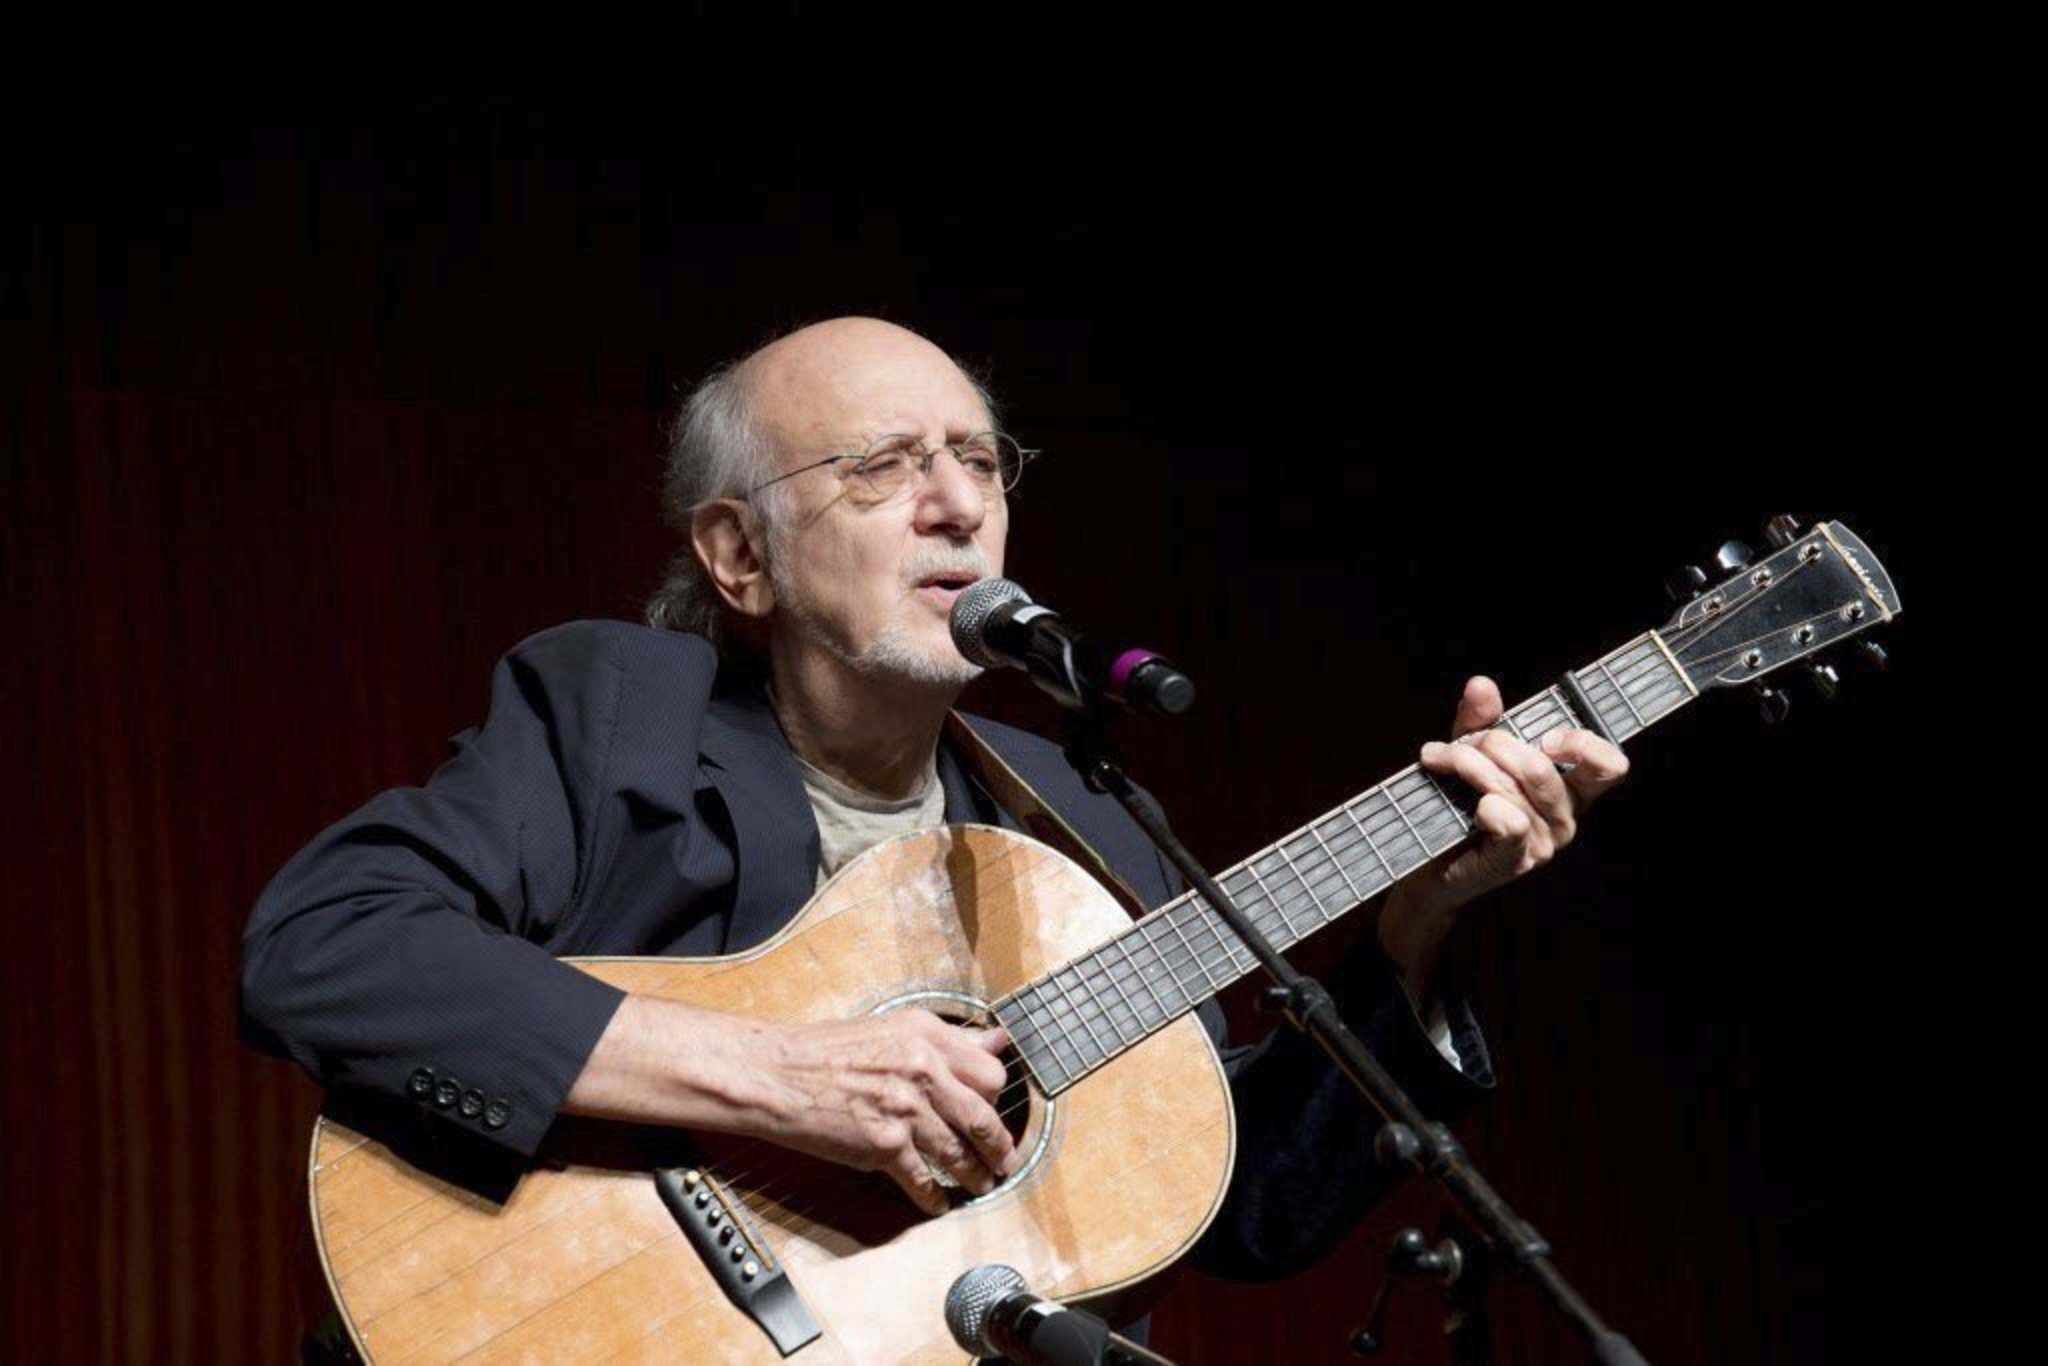 Singer-songwriter Peter Yarrow, from the 1960s folk music trio Peter, Paul and Mary. (Nick Ut / The Associated Press files)</p></p>